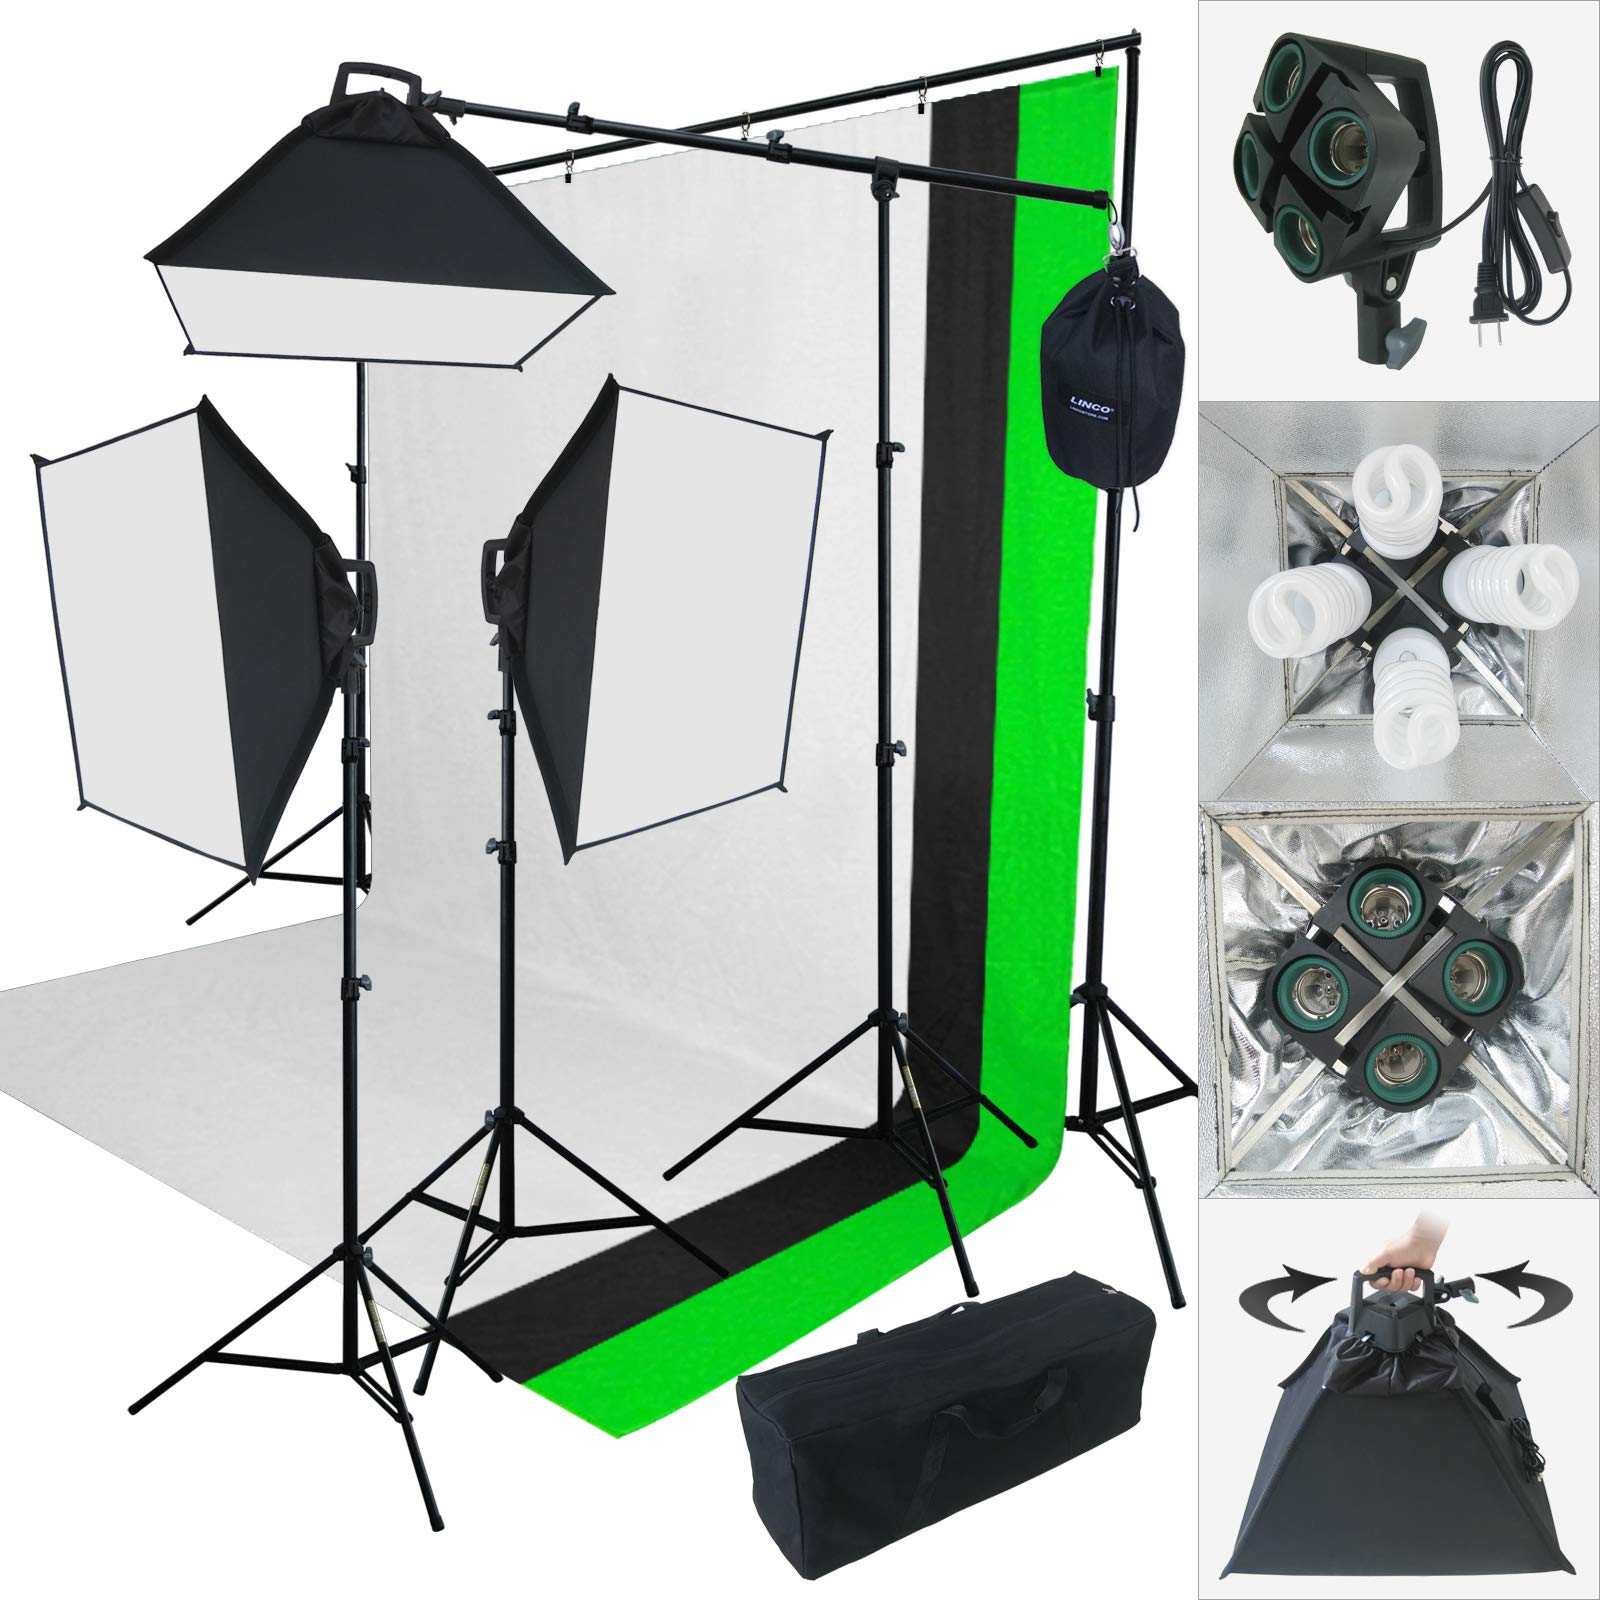 Linco Lincostore 2000 Watt Photo Studio Lighting Kit With 3 Color Muslin Backdrop Stand Photography Flora X Fluorescent 4-Socket Light Bank and Auto Pop-Up Softbox - Only takes 3 seconds to Set-up by Linco